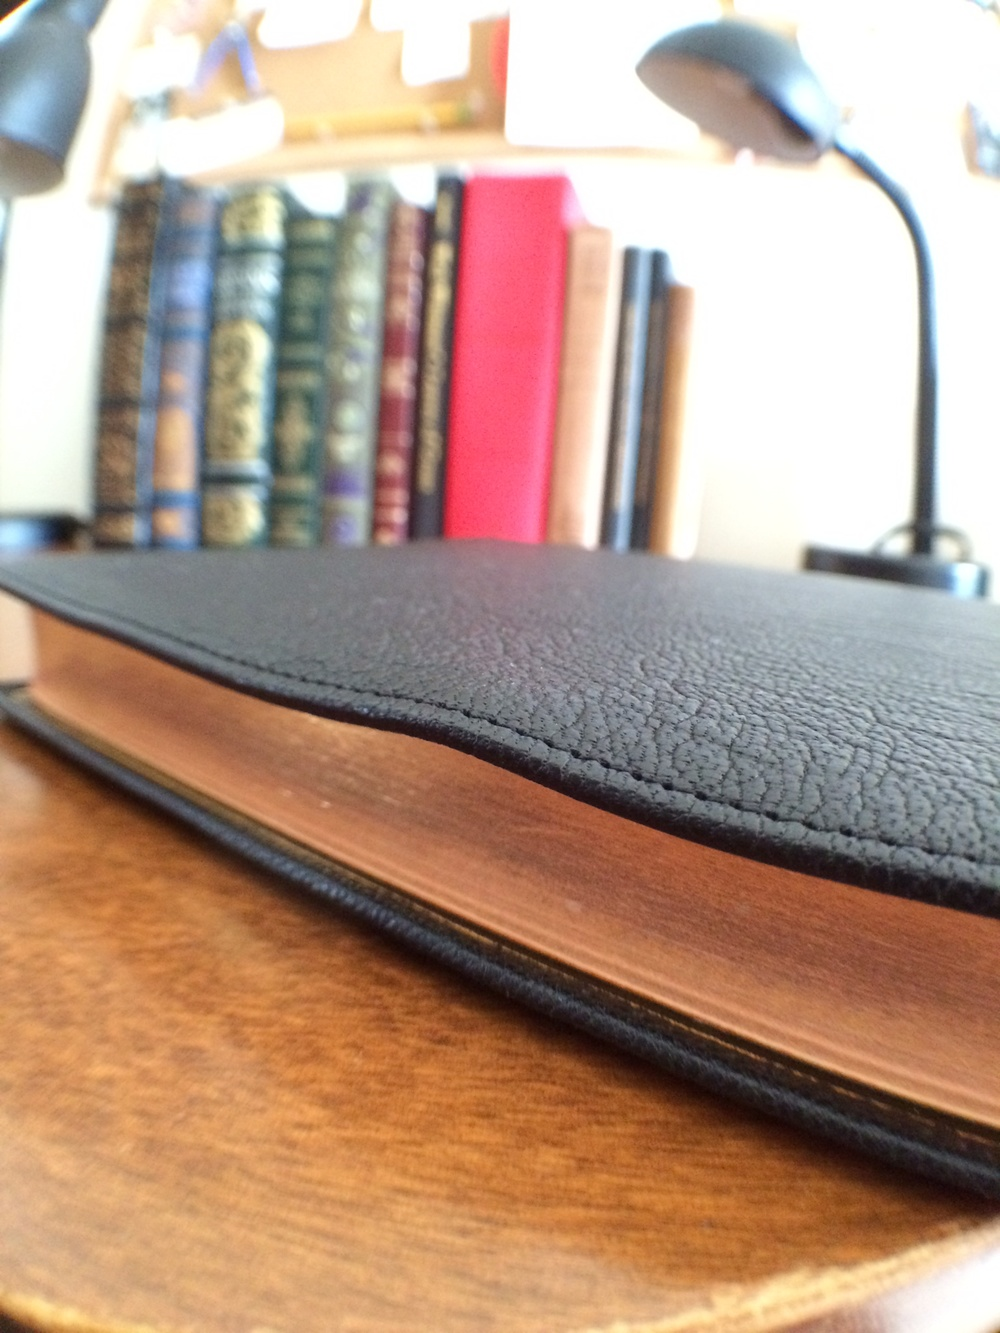 Goatskin leather is very soft (in my case almost  wavy ) this highlights the leather's authenticity and softness.